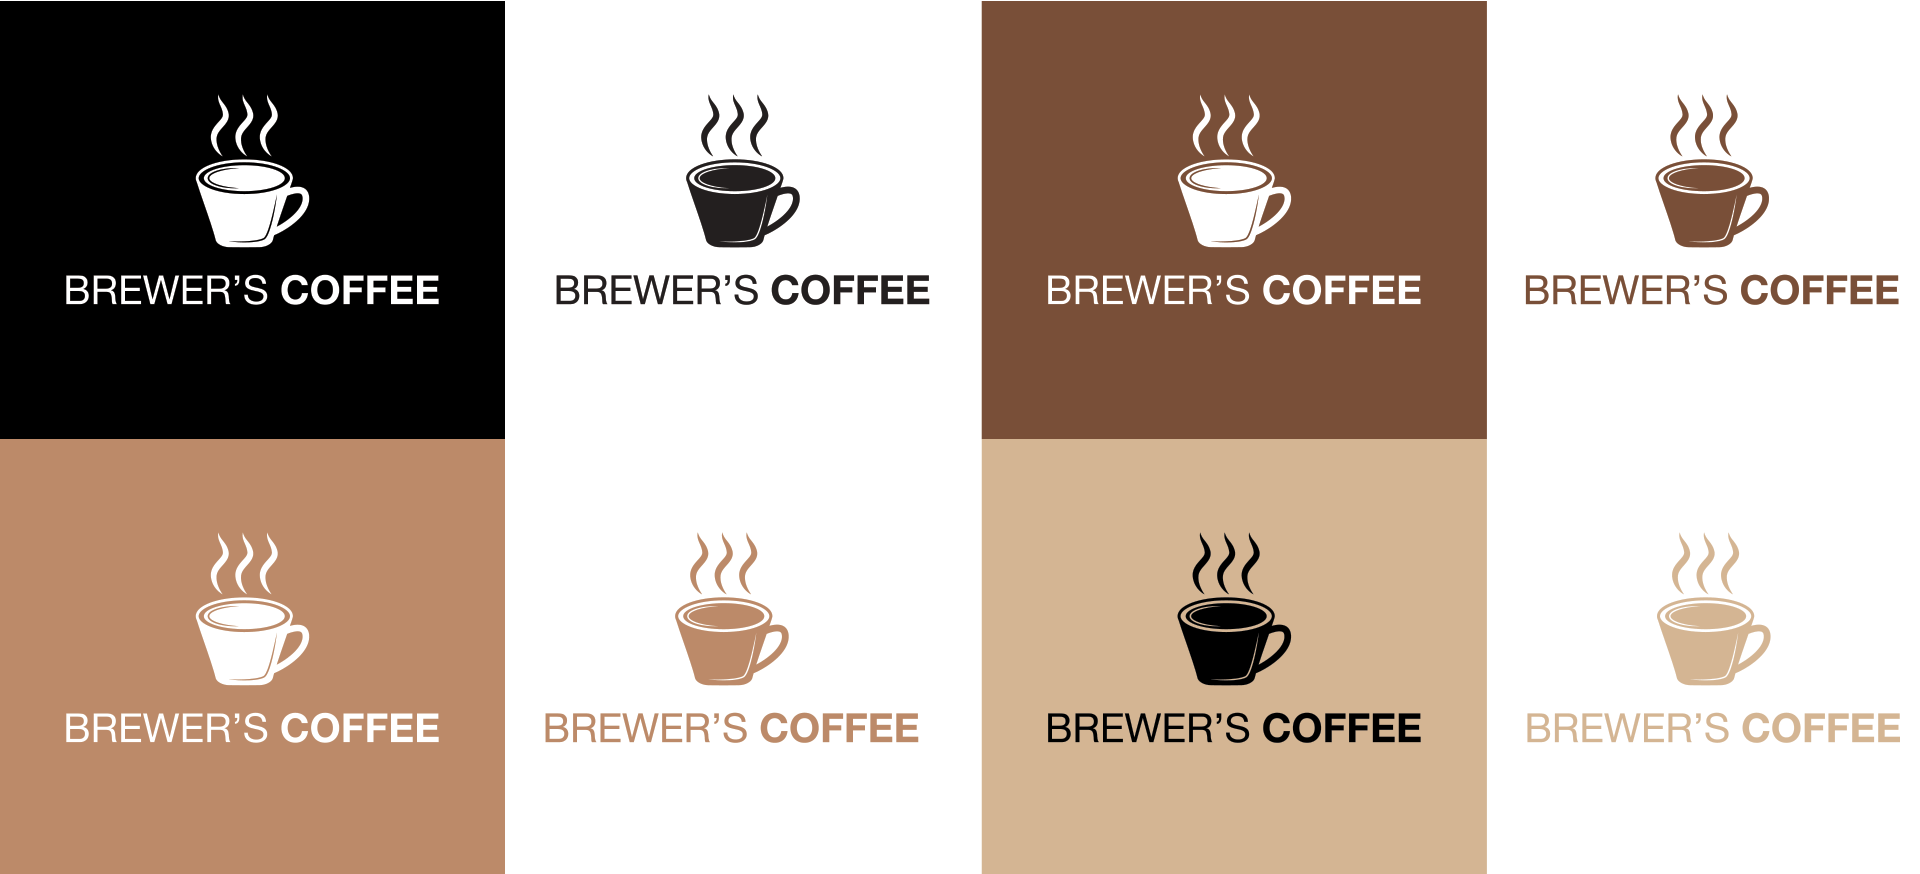 Logo Design Brewer's Coffee